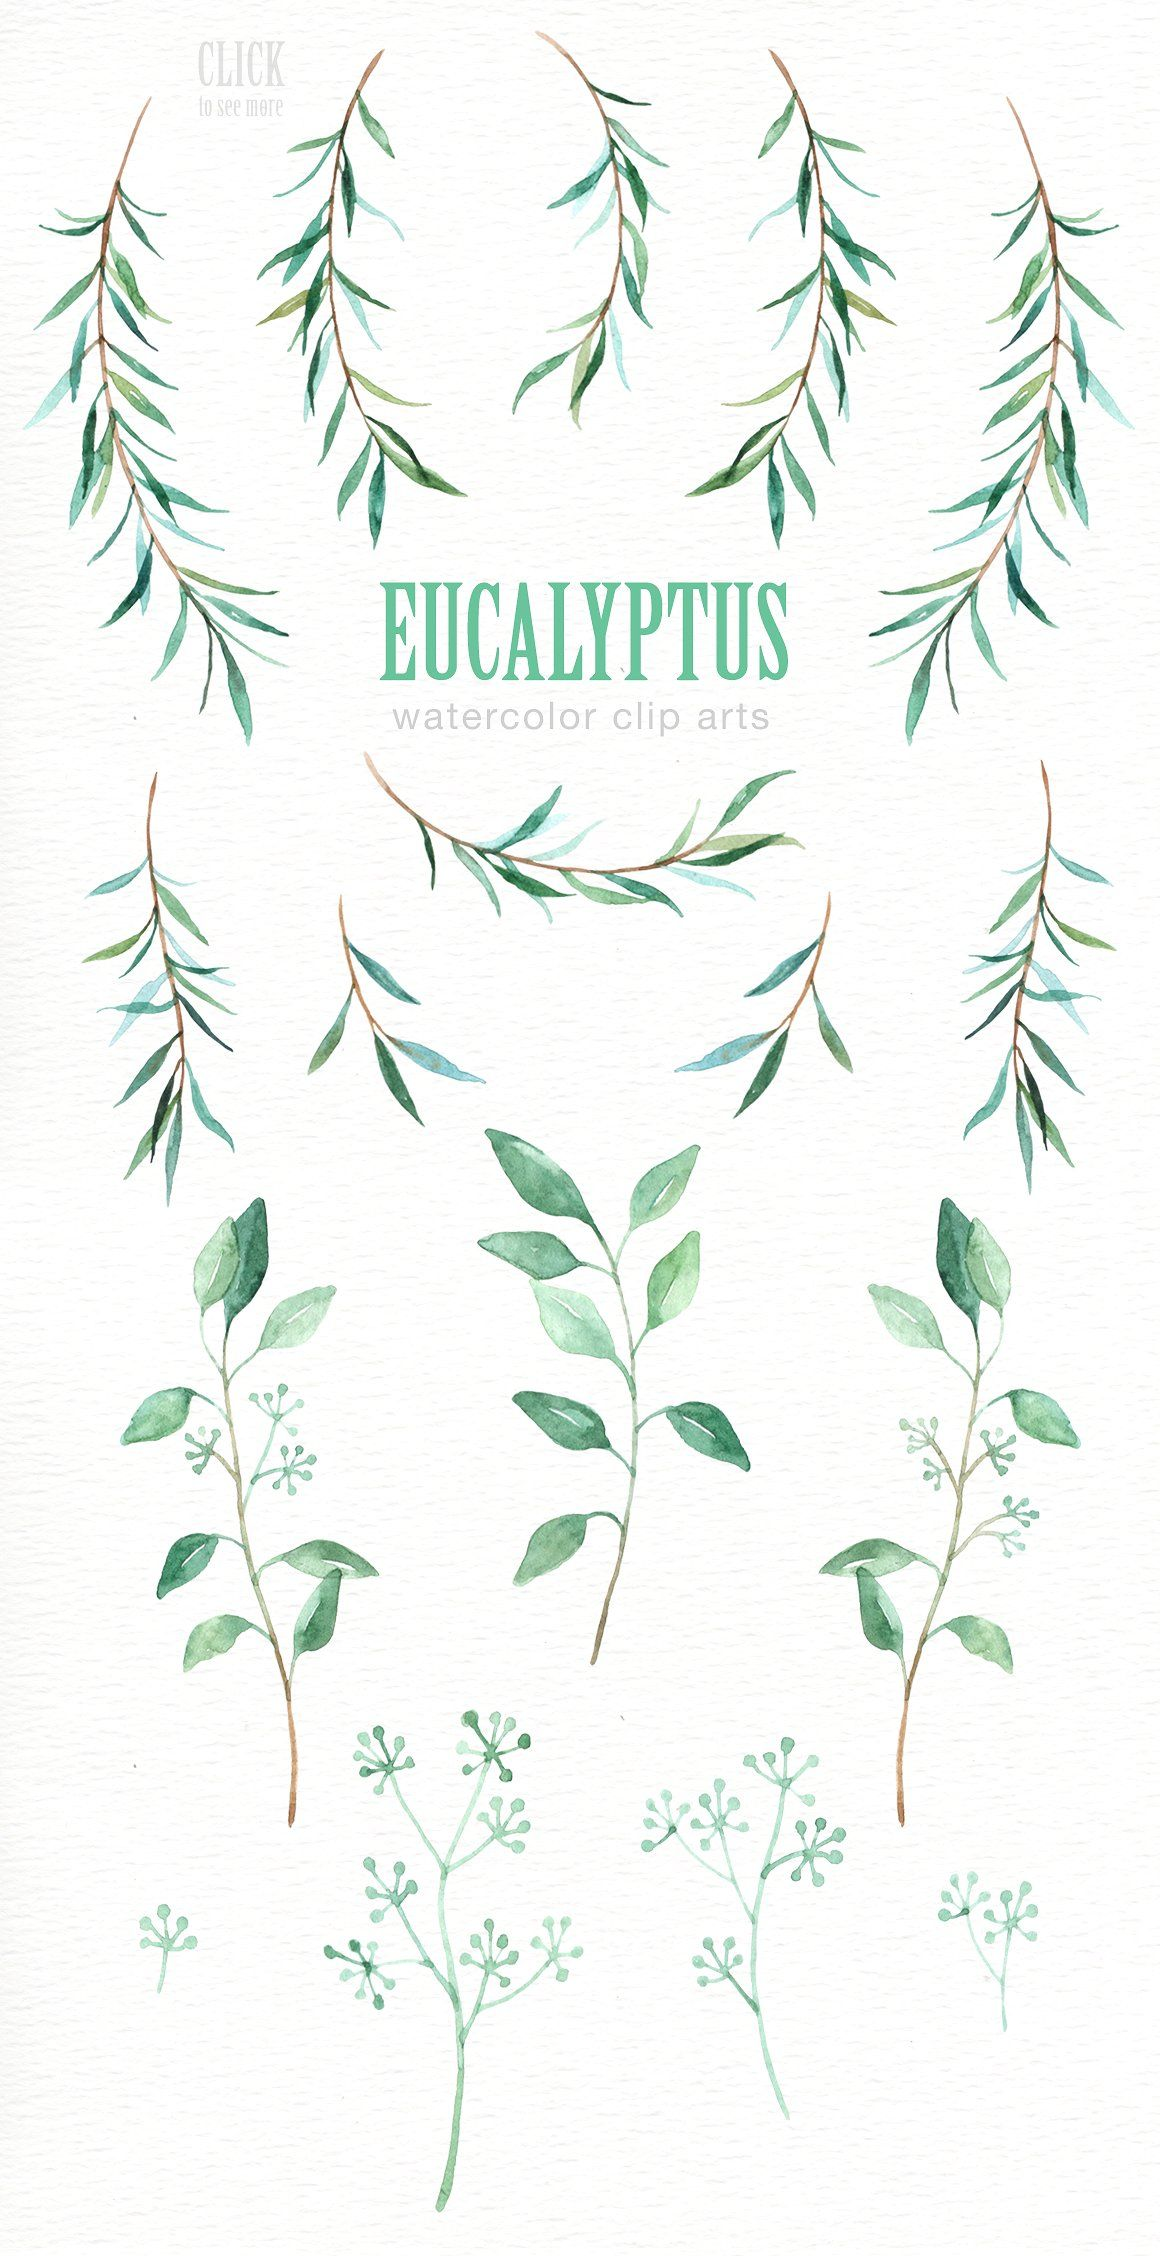 Eucalyptus Leaf Watercolor clipart #palette#Included#fresh.